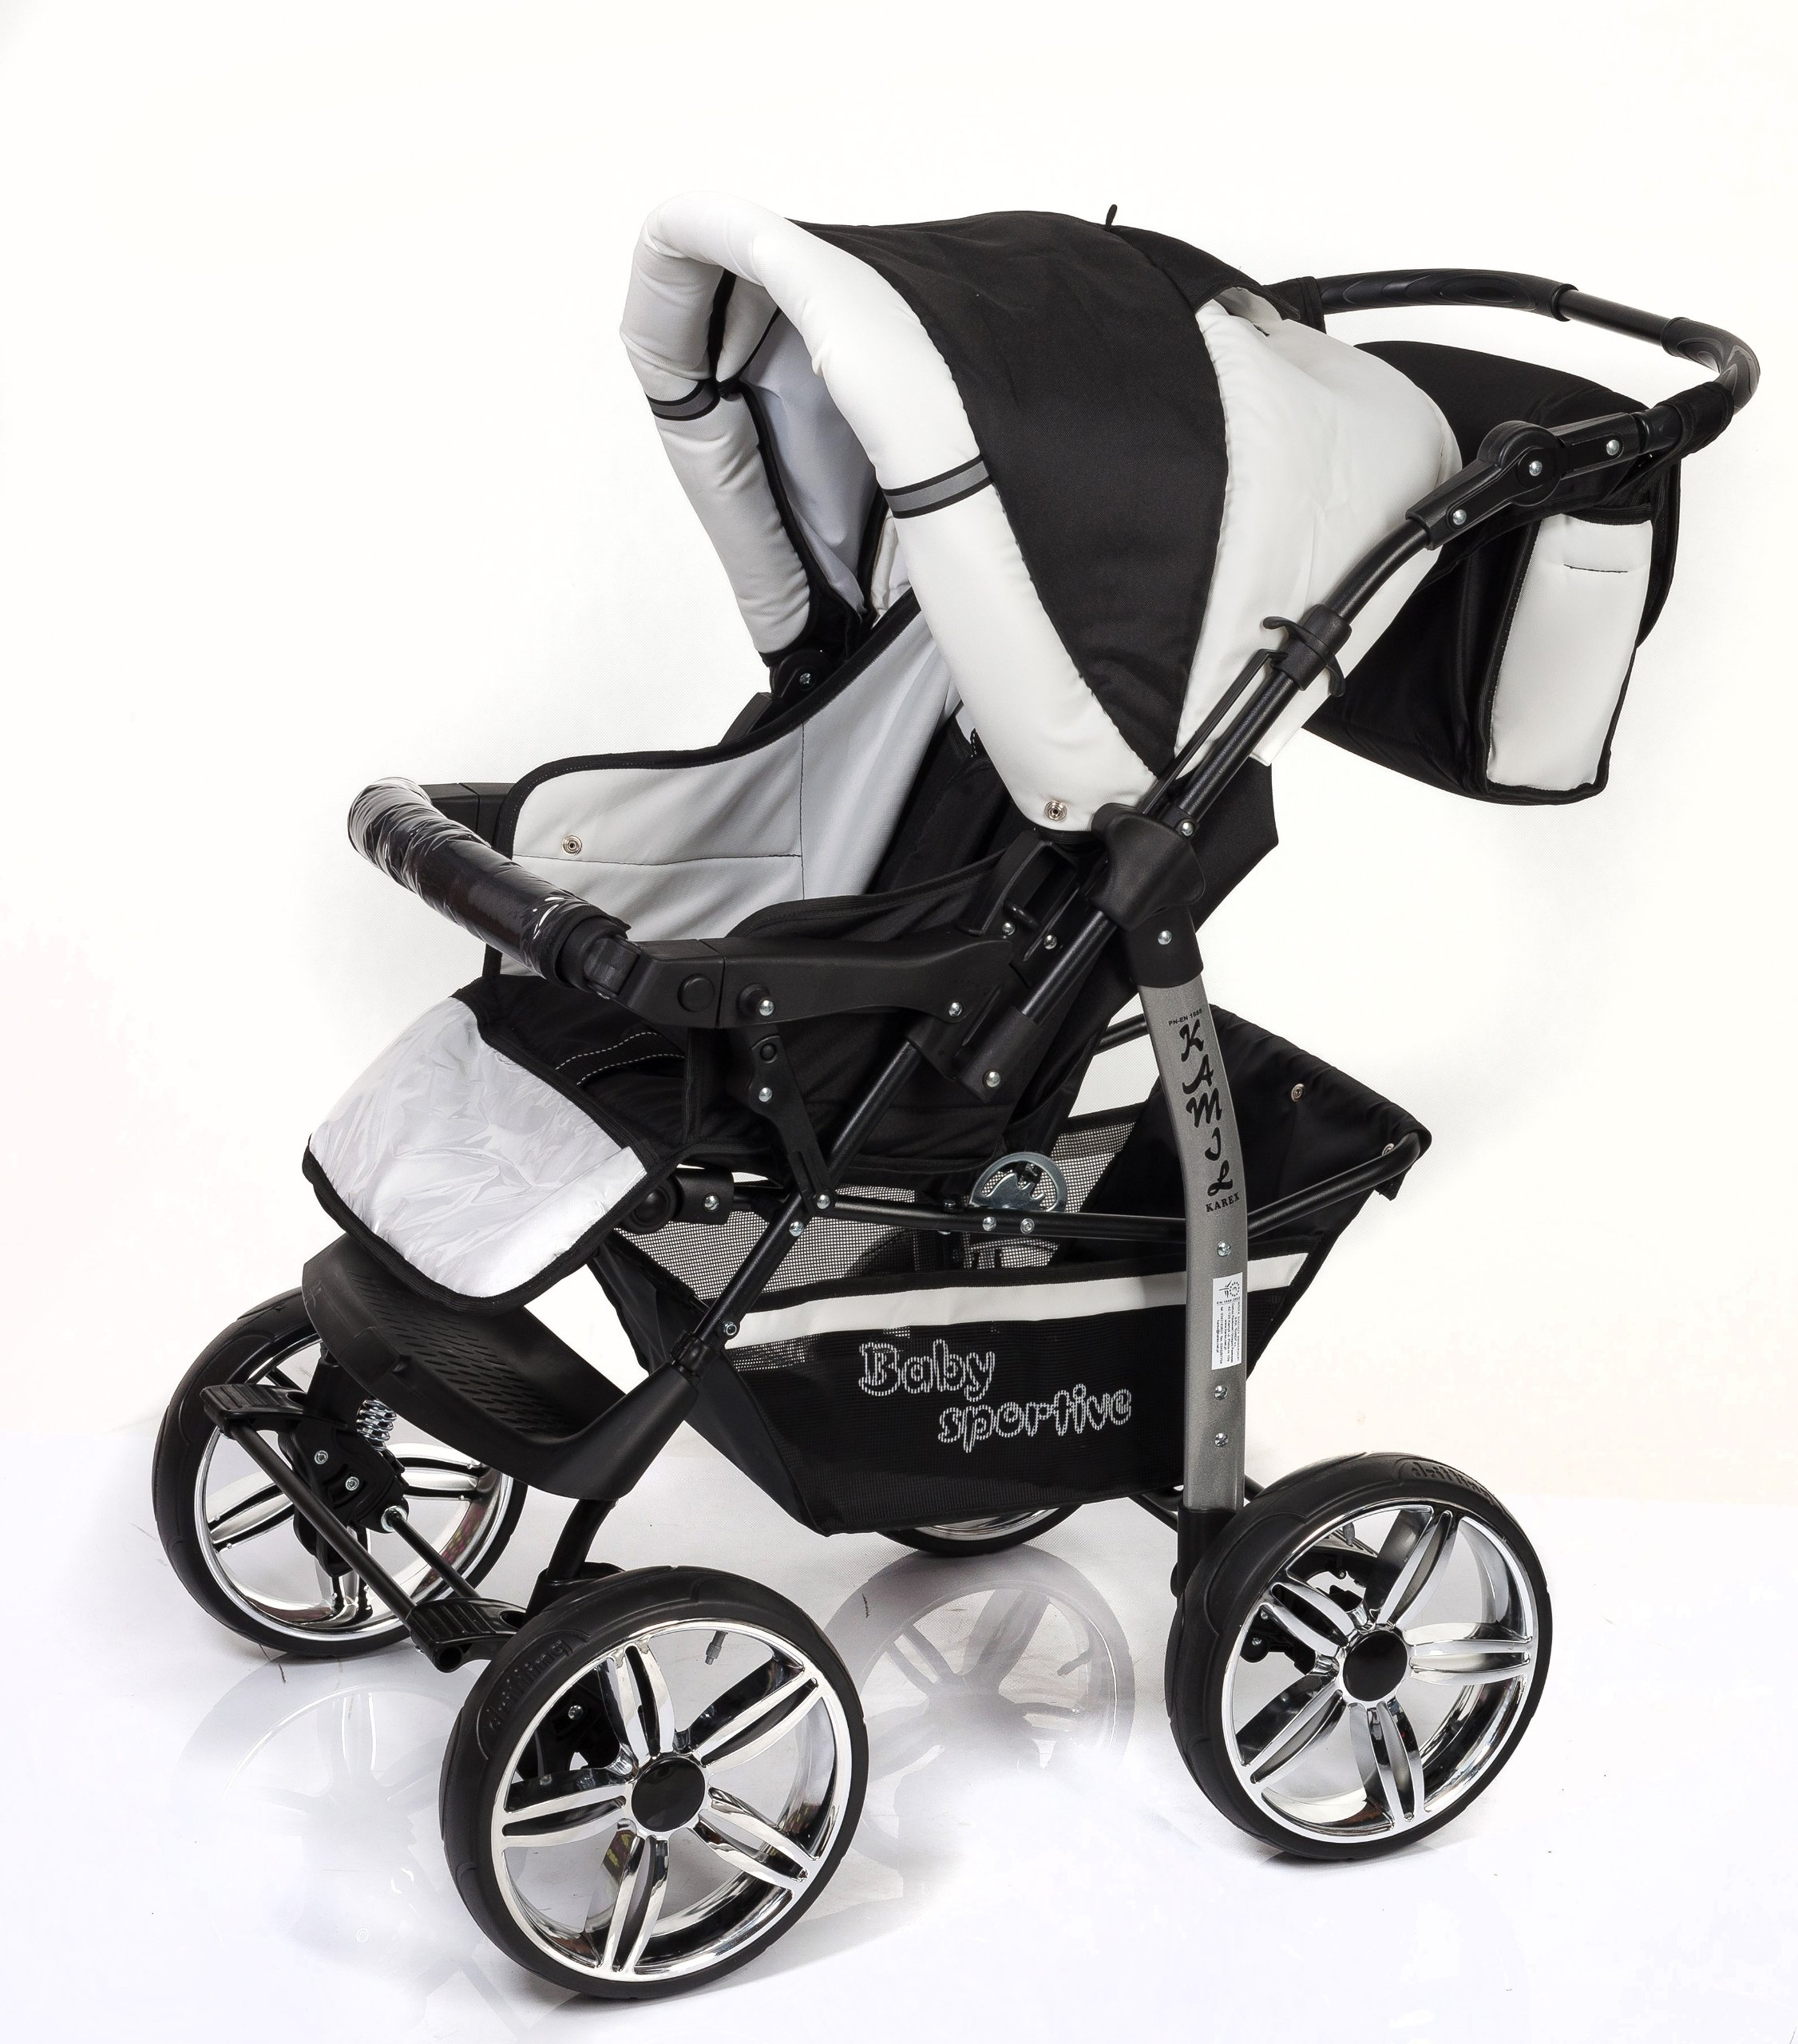 3-in-1 Travel System with Baby Pram, Car Seat, Pushchair & Accessories, Black & White   4